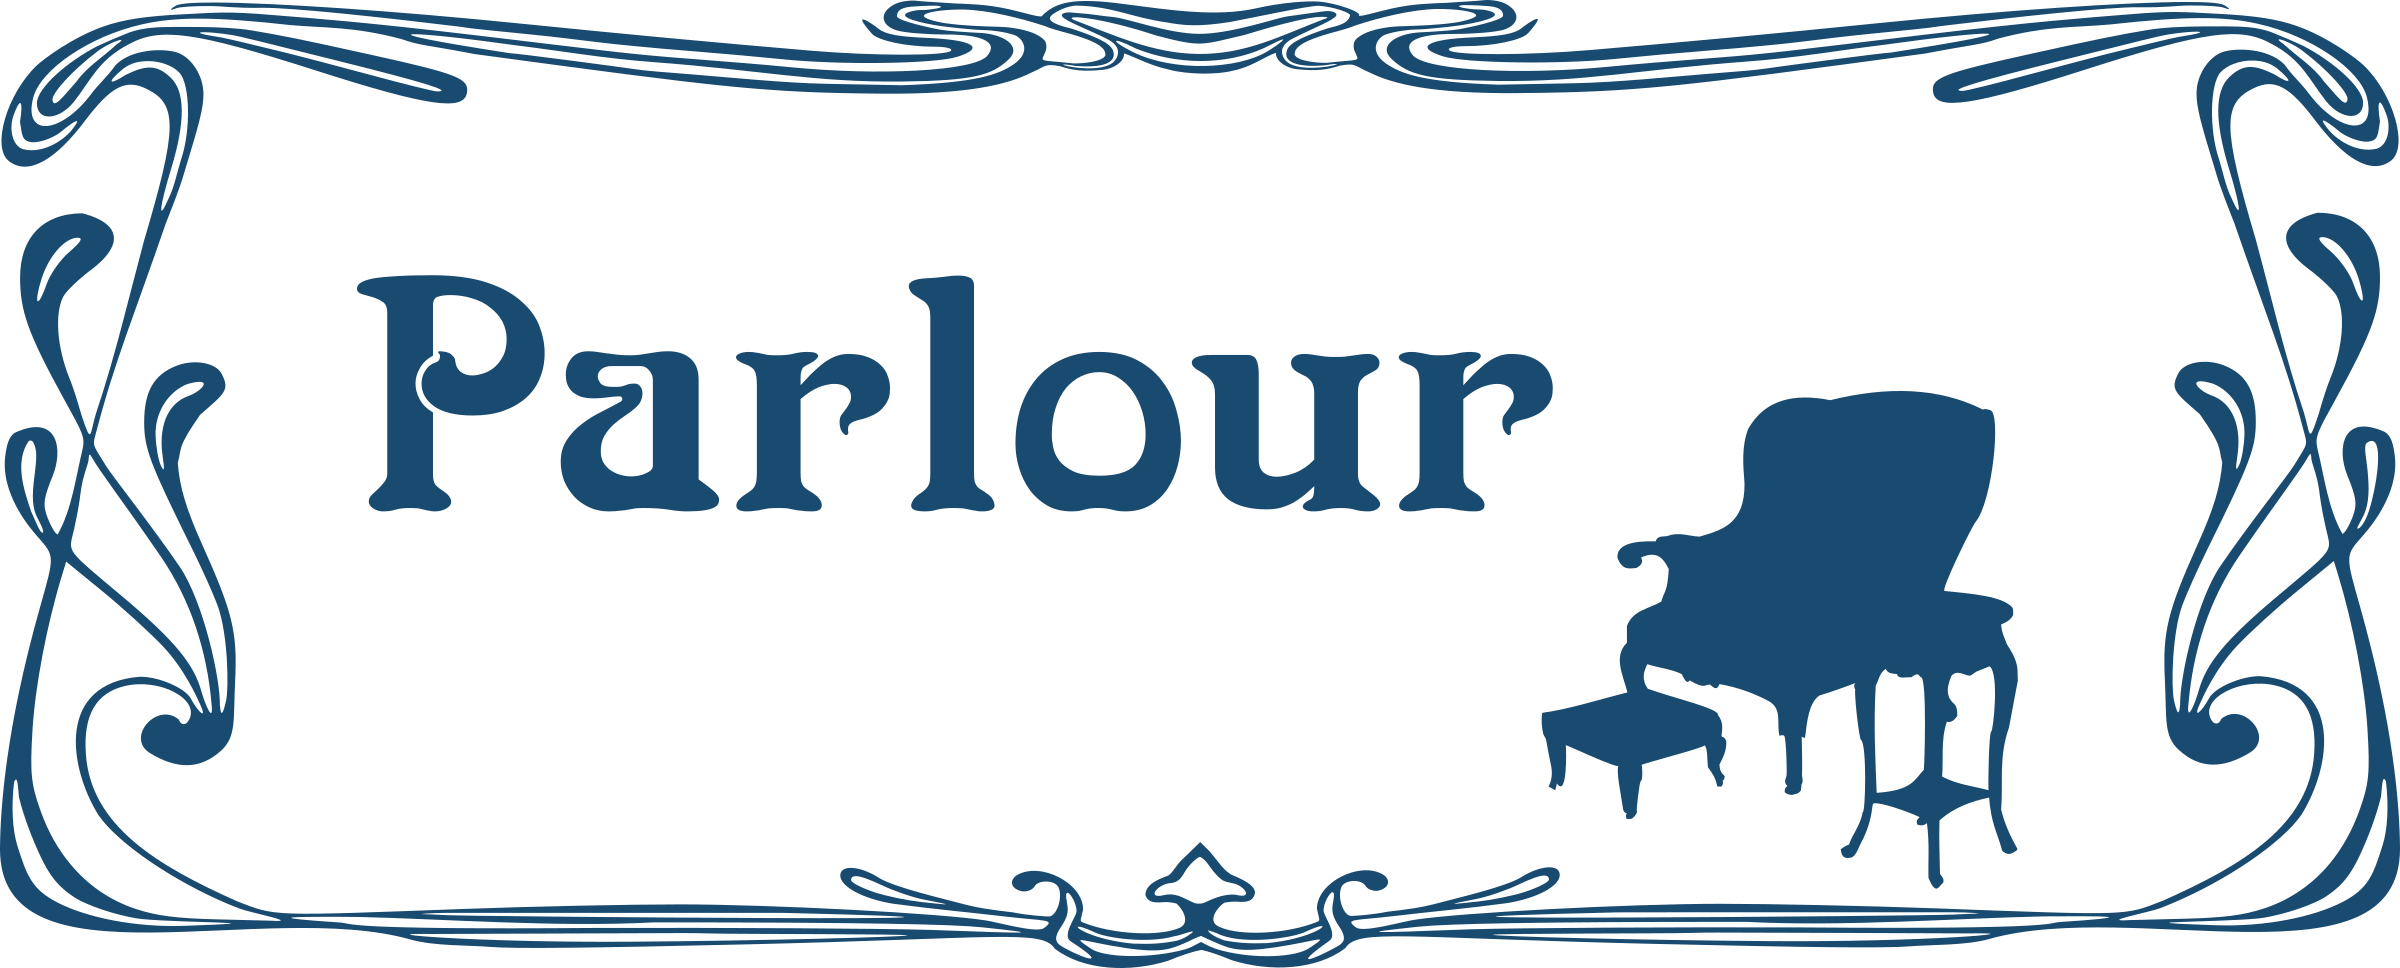 Parlour door sign by Moini